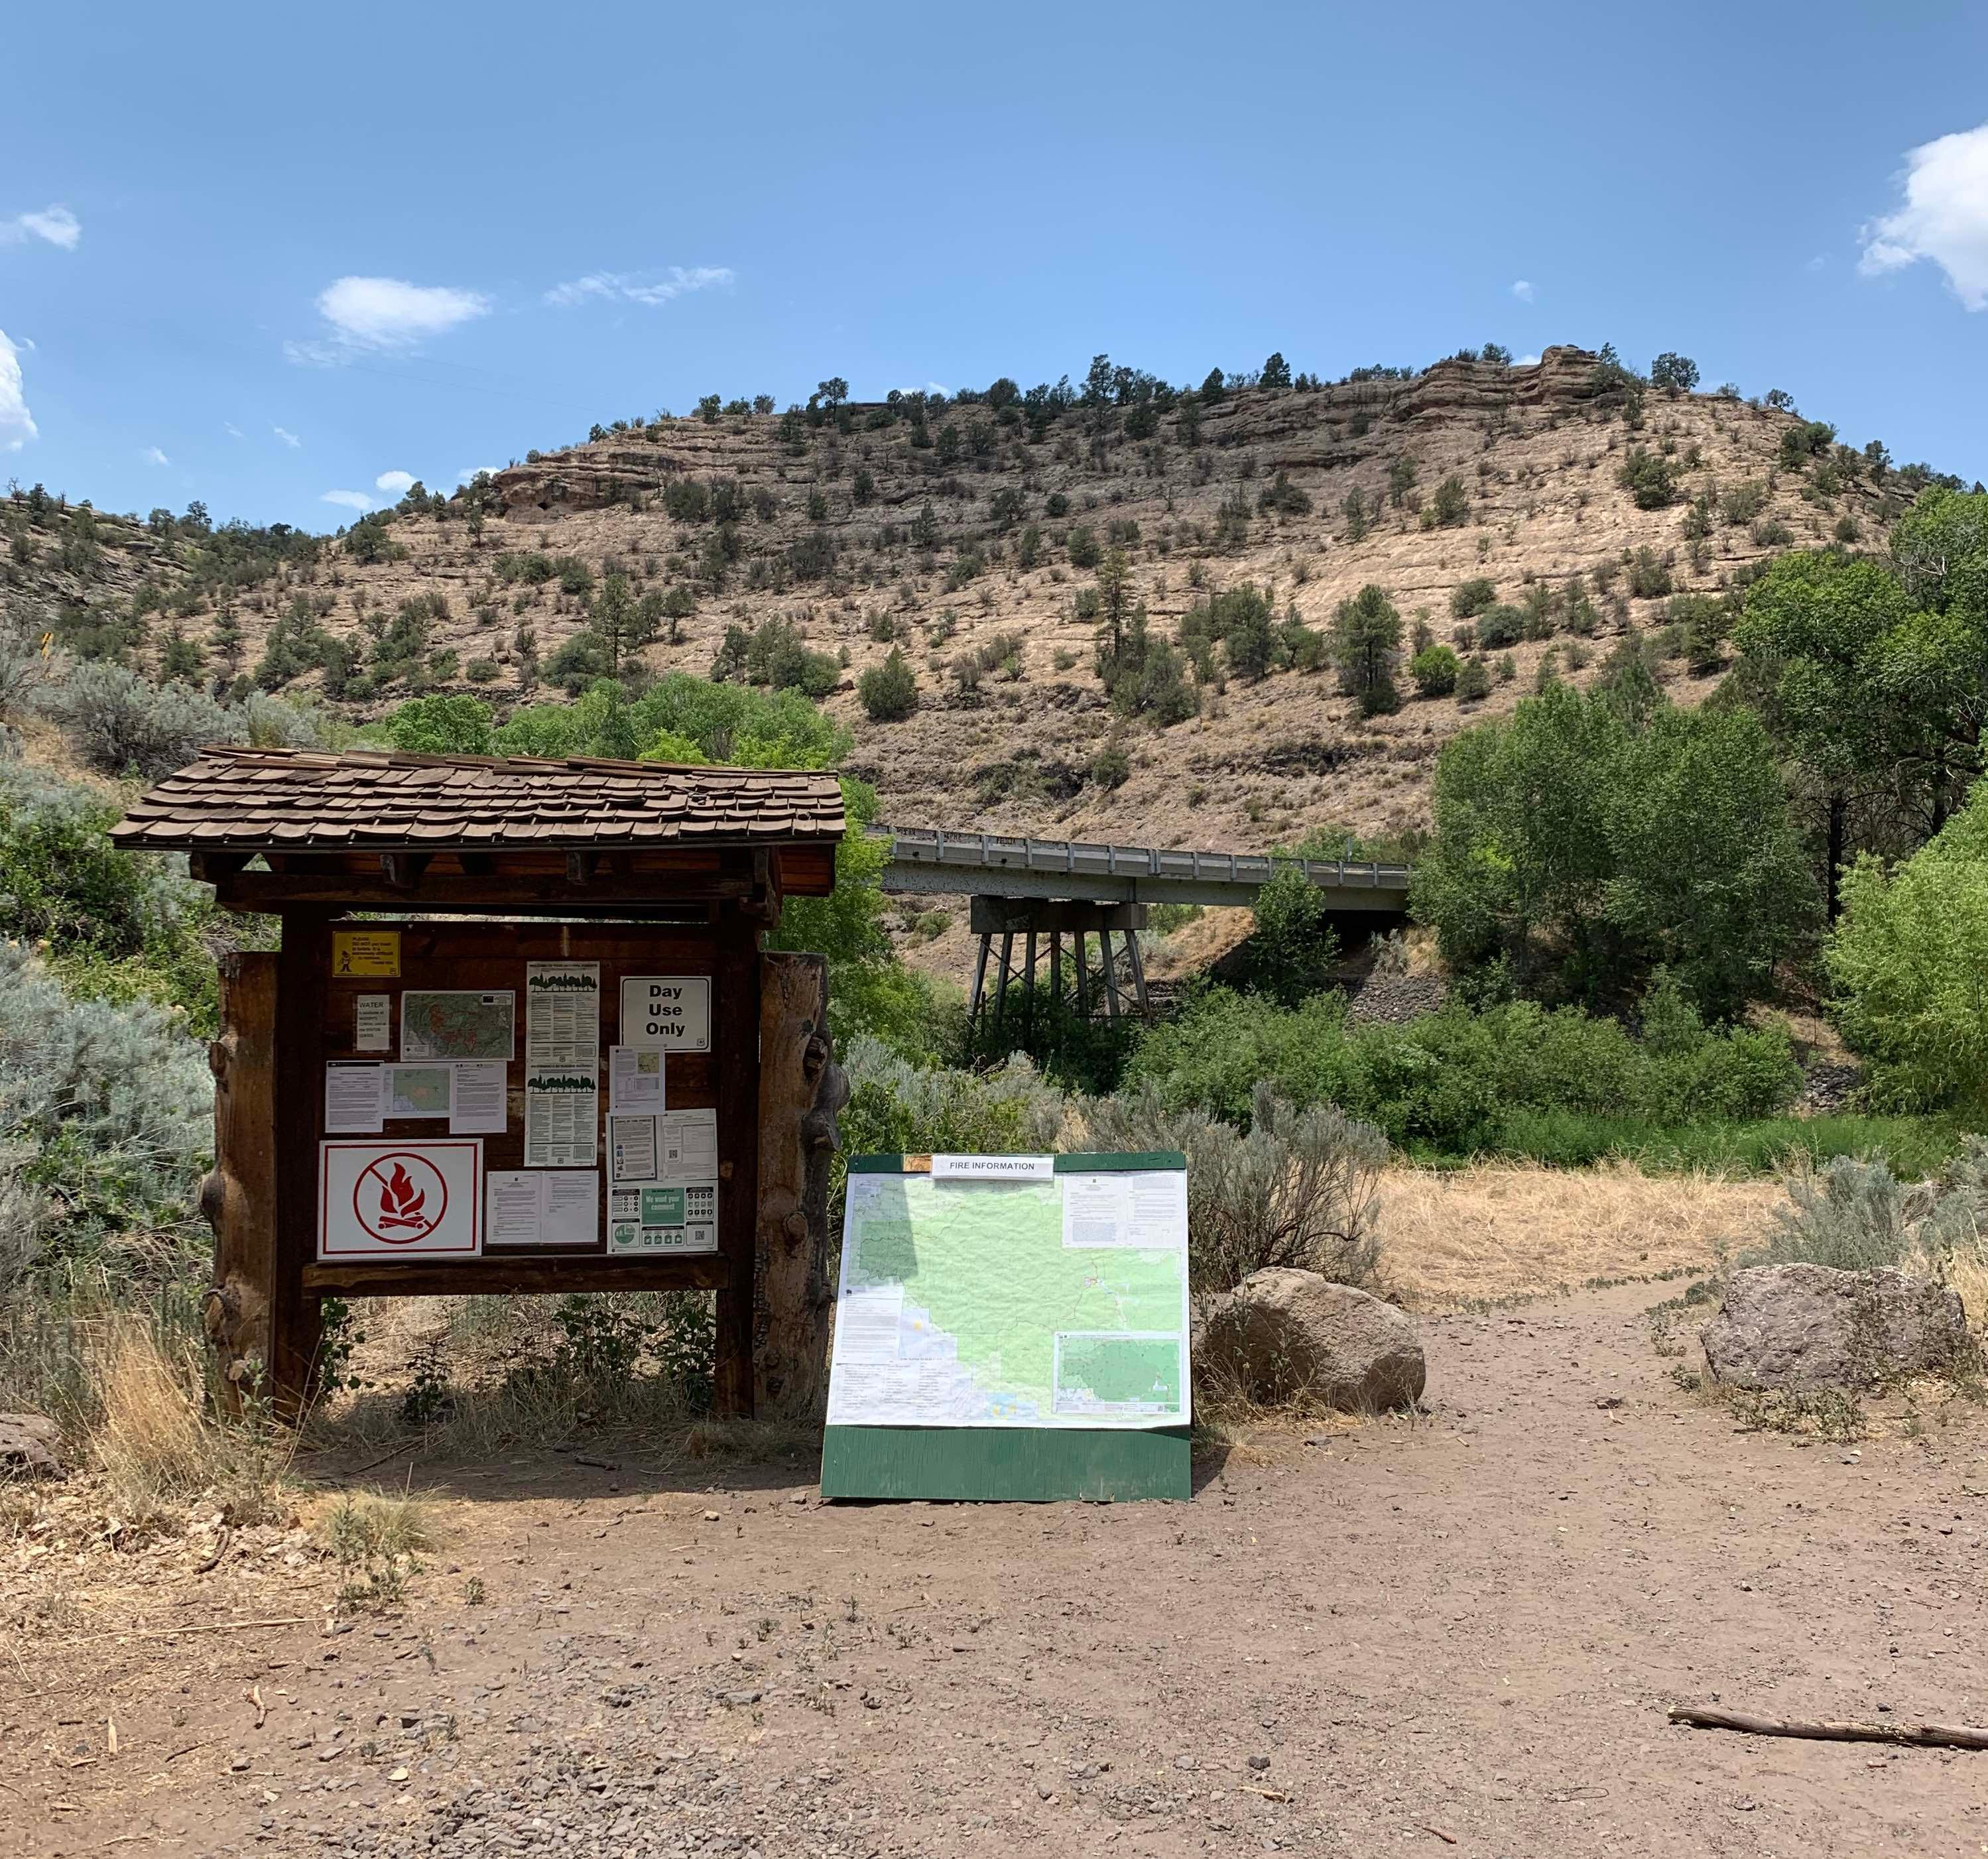 Information kiosk at the Grapevine Campground on the Gila National Forest.